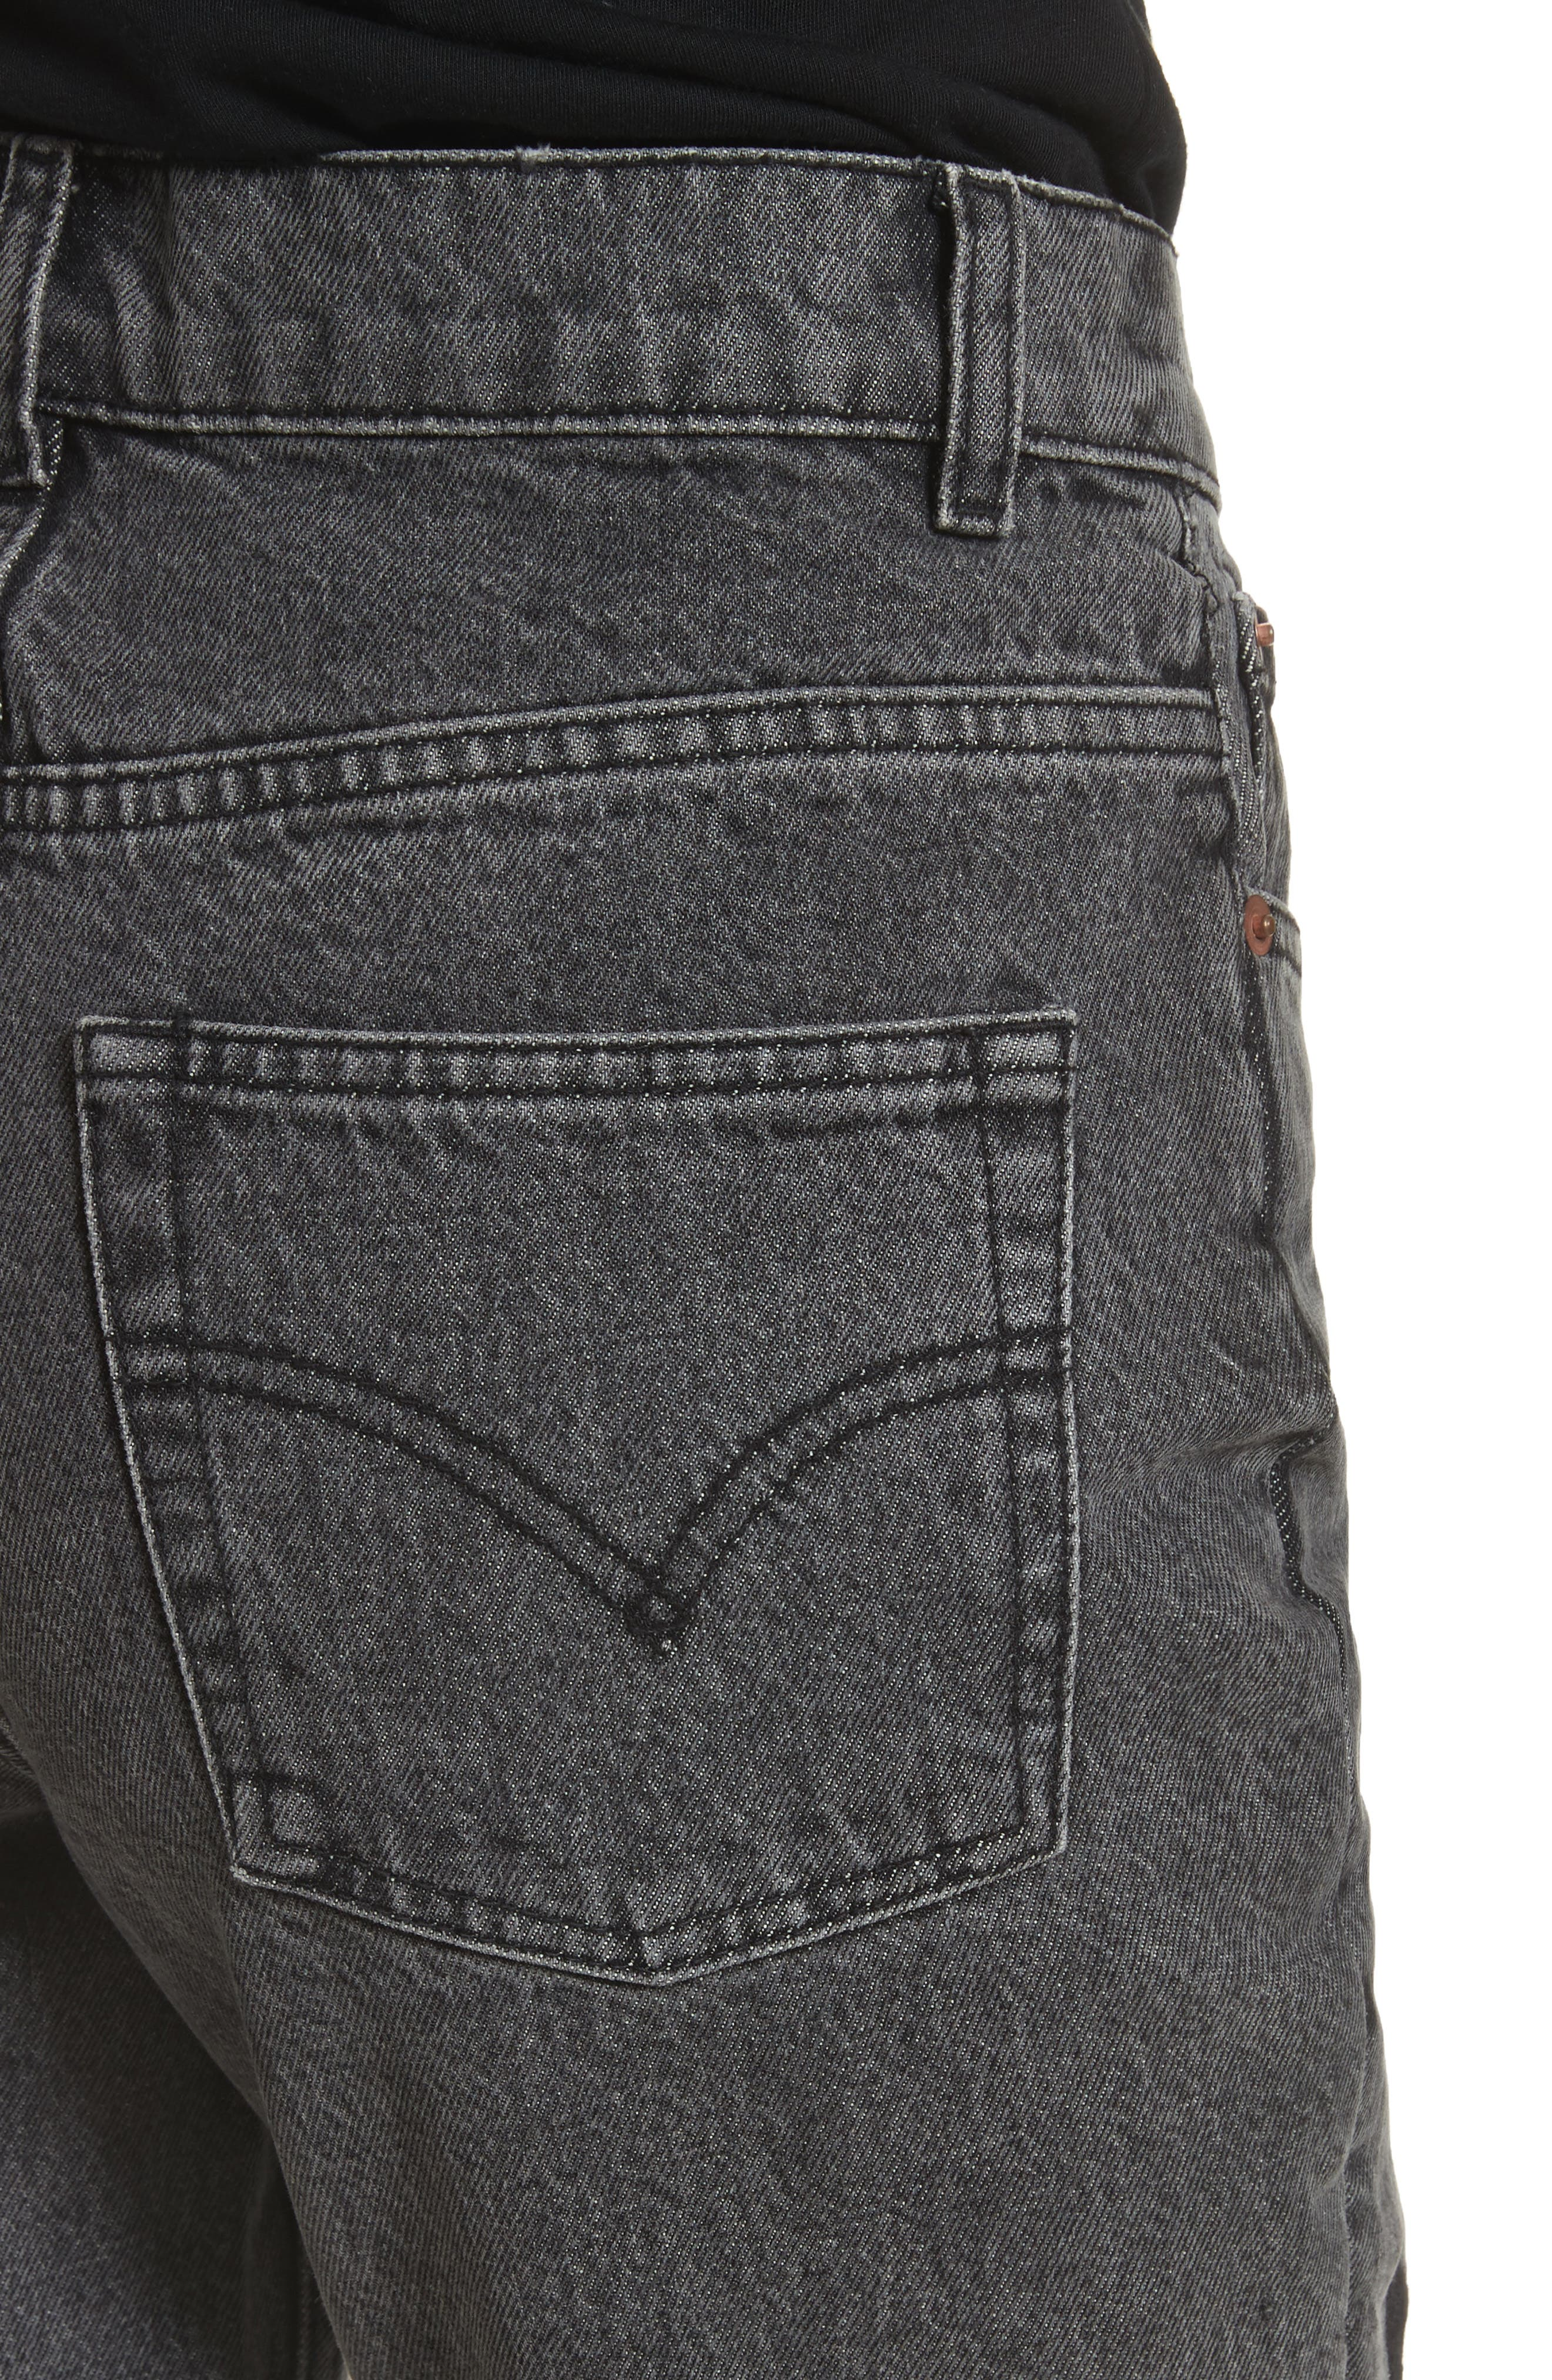 Dog Embroidered Jeans,                             Alternate thumbnail 4, color,                             020